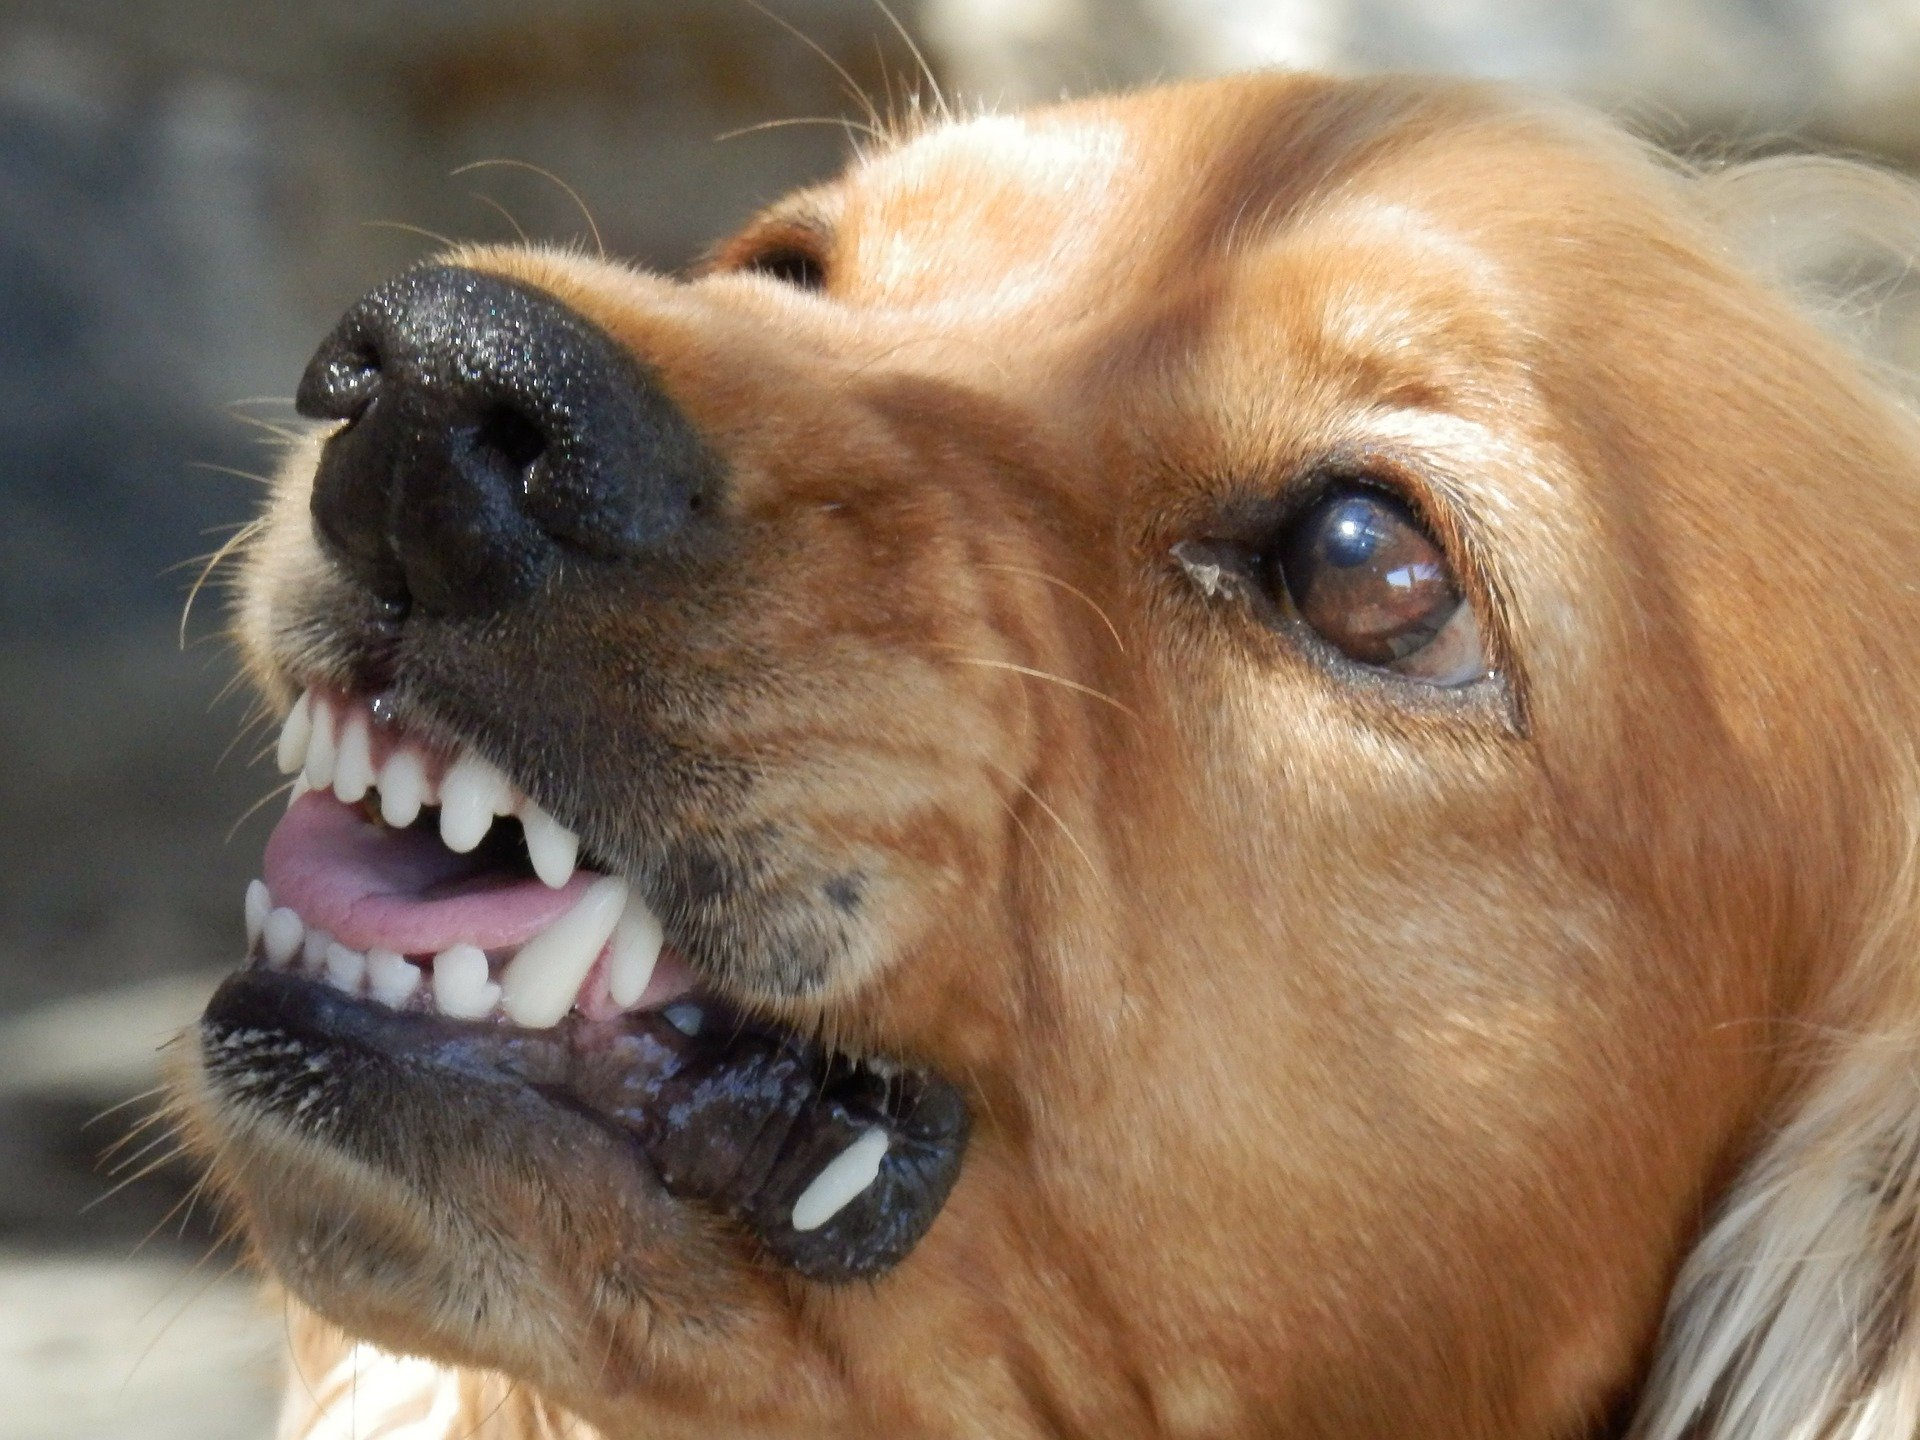 What Can You Do About Your Neighbor's Aggressive Dog?